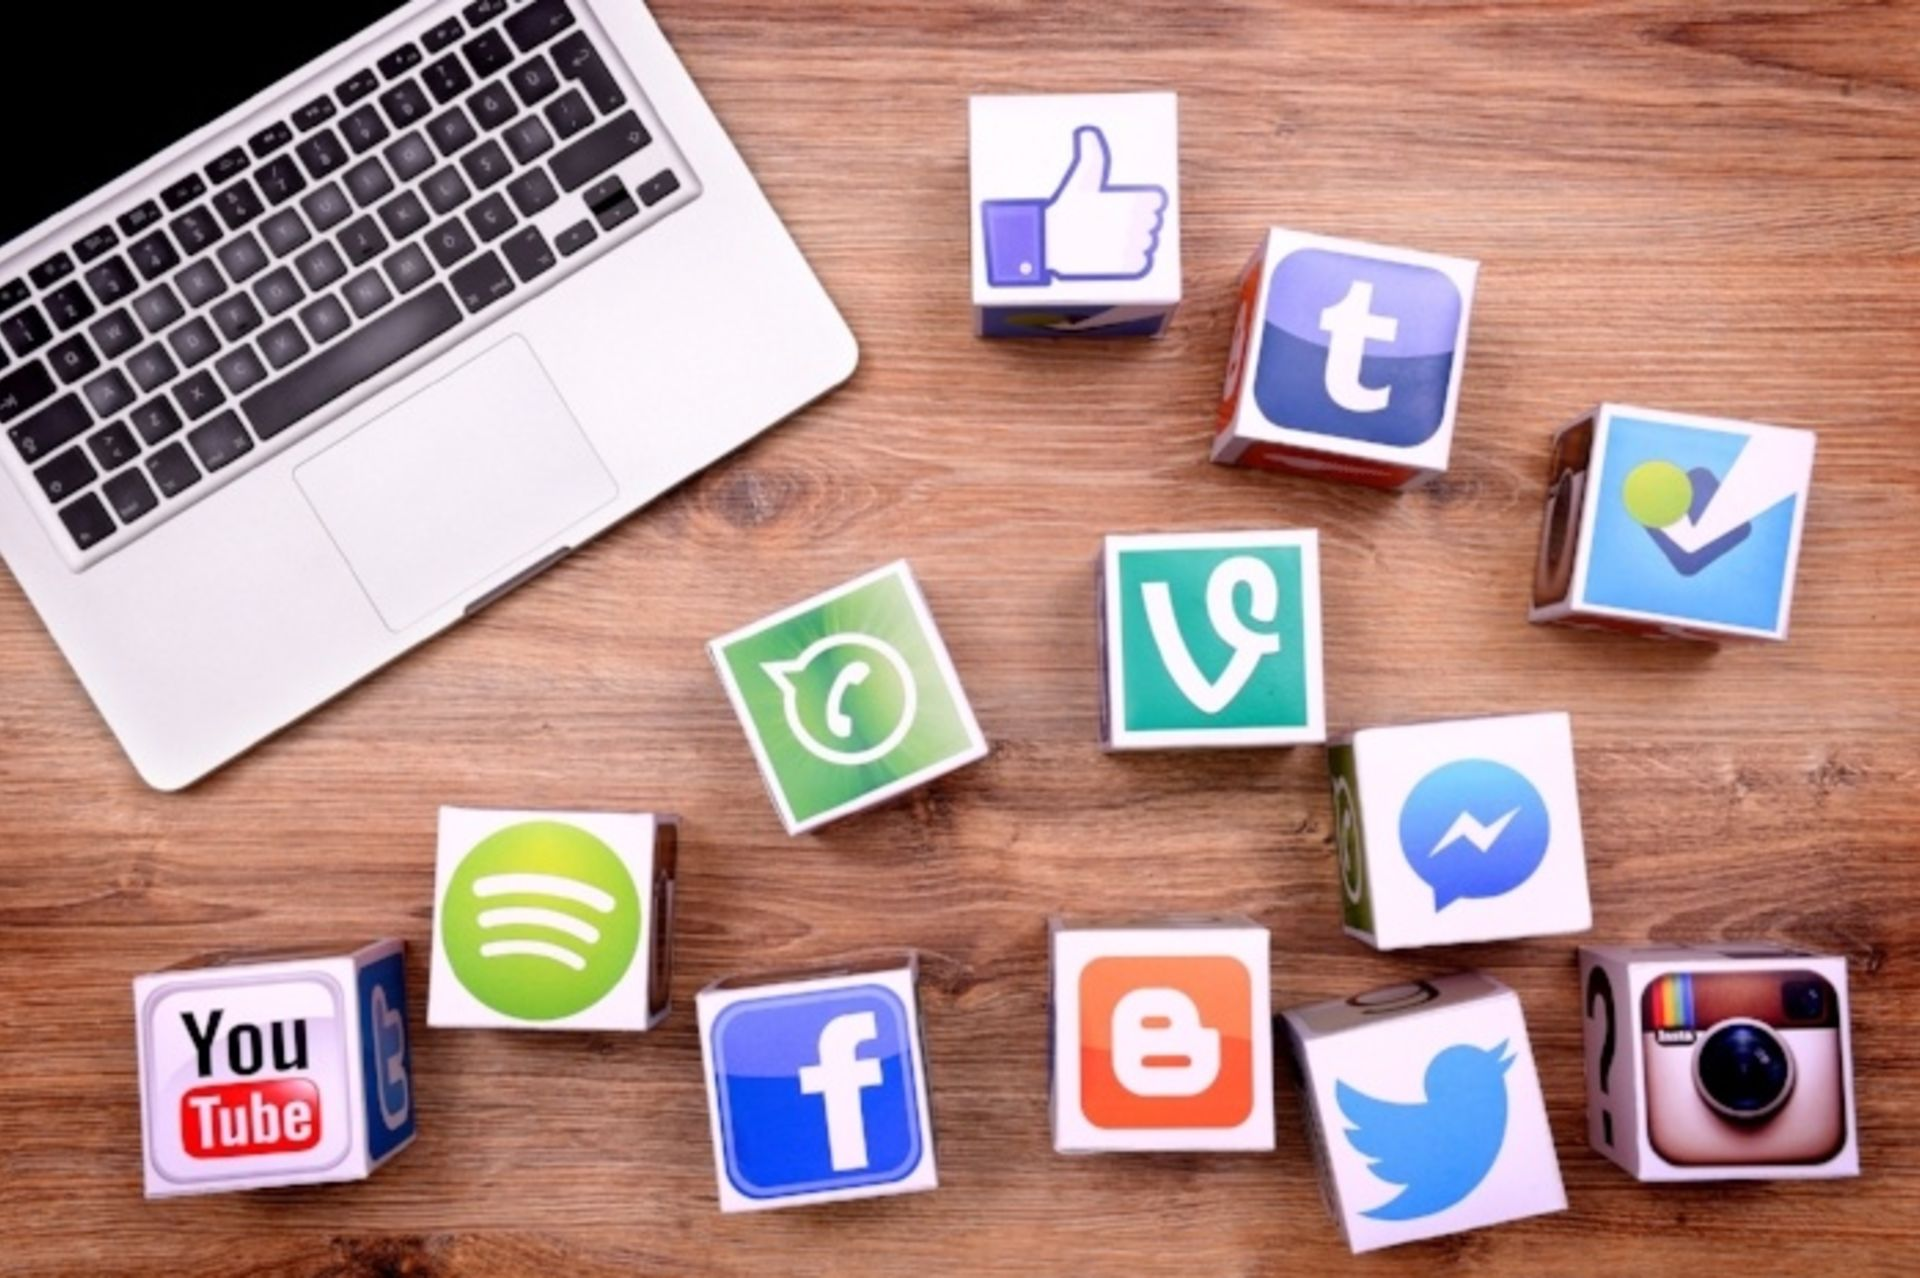 How To Rack Up Referrals Through Social Media